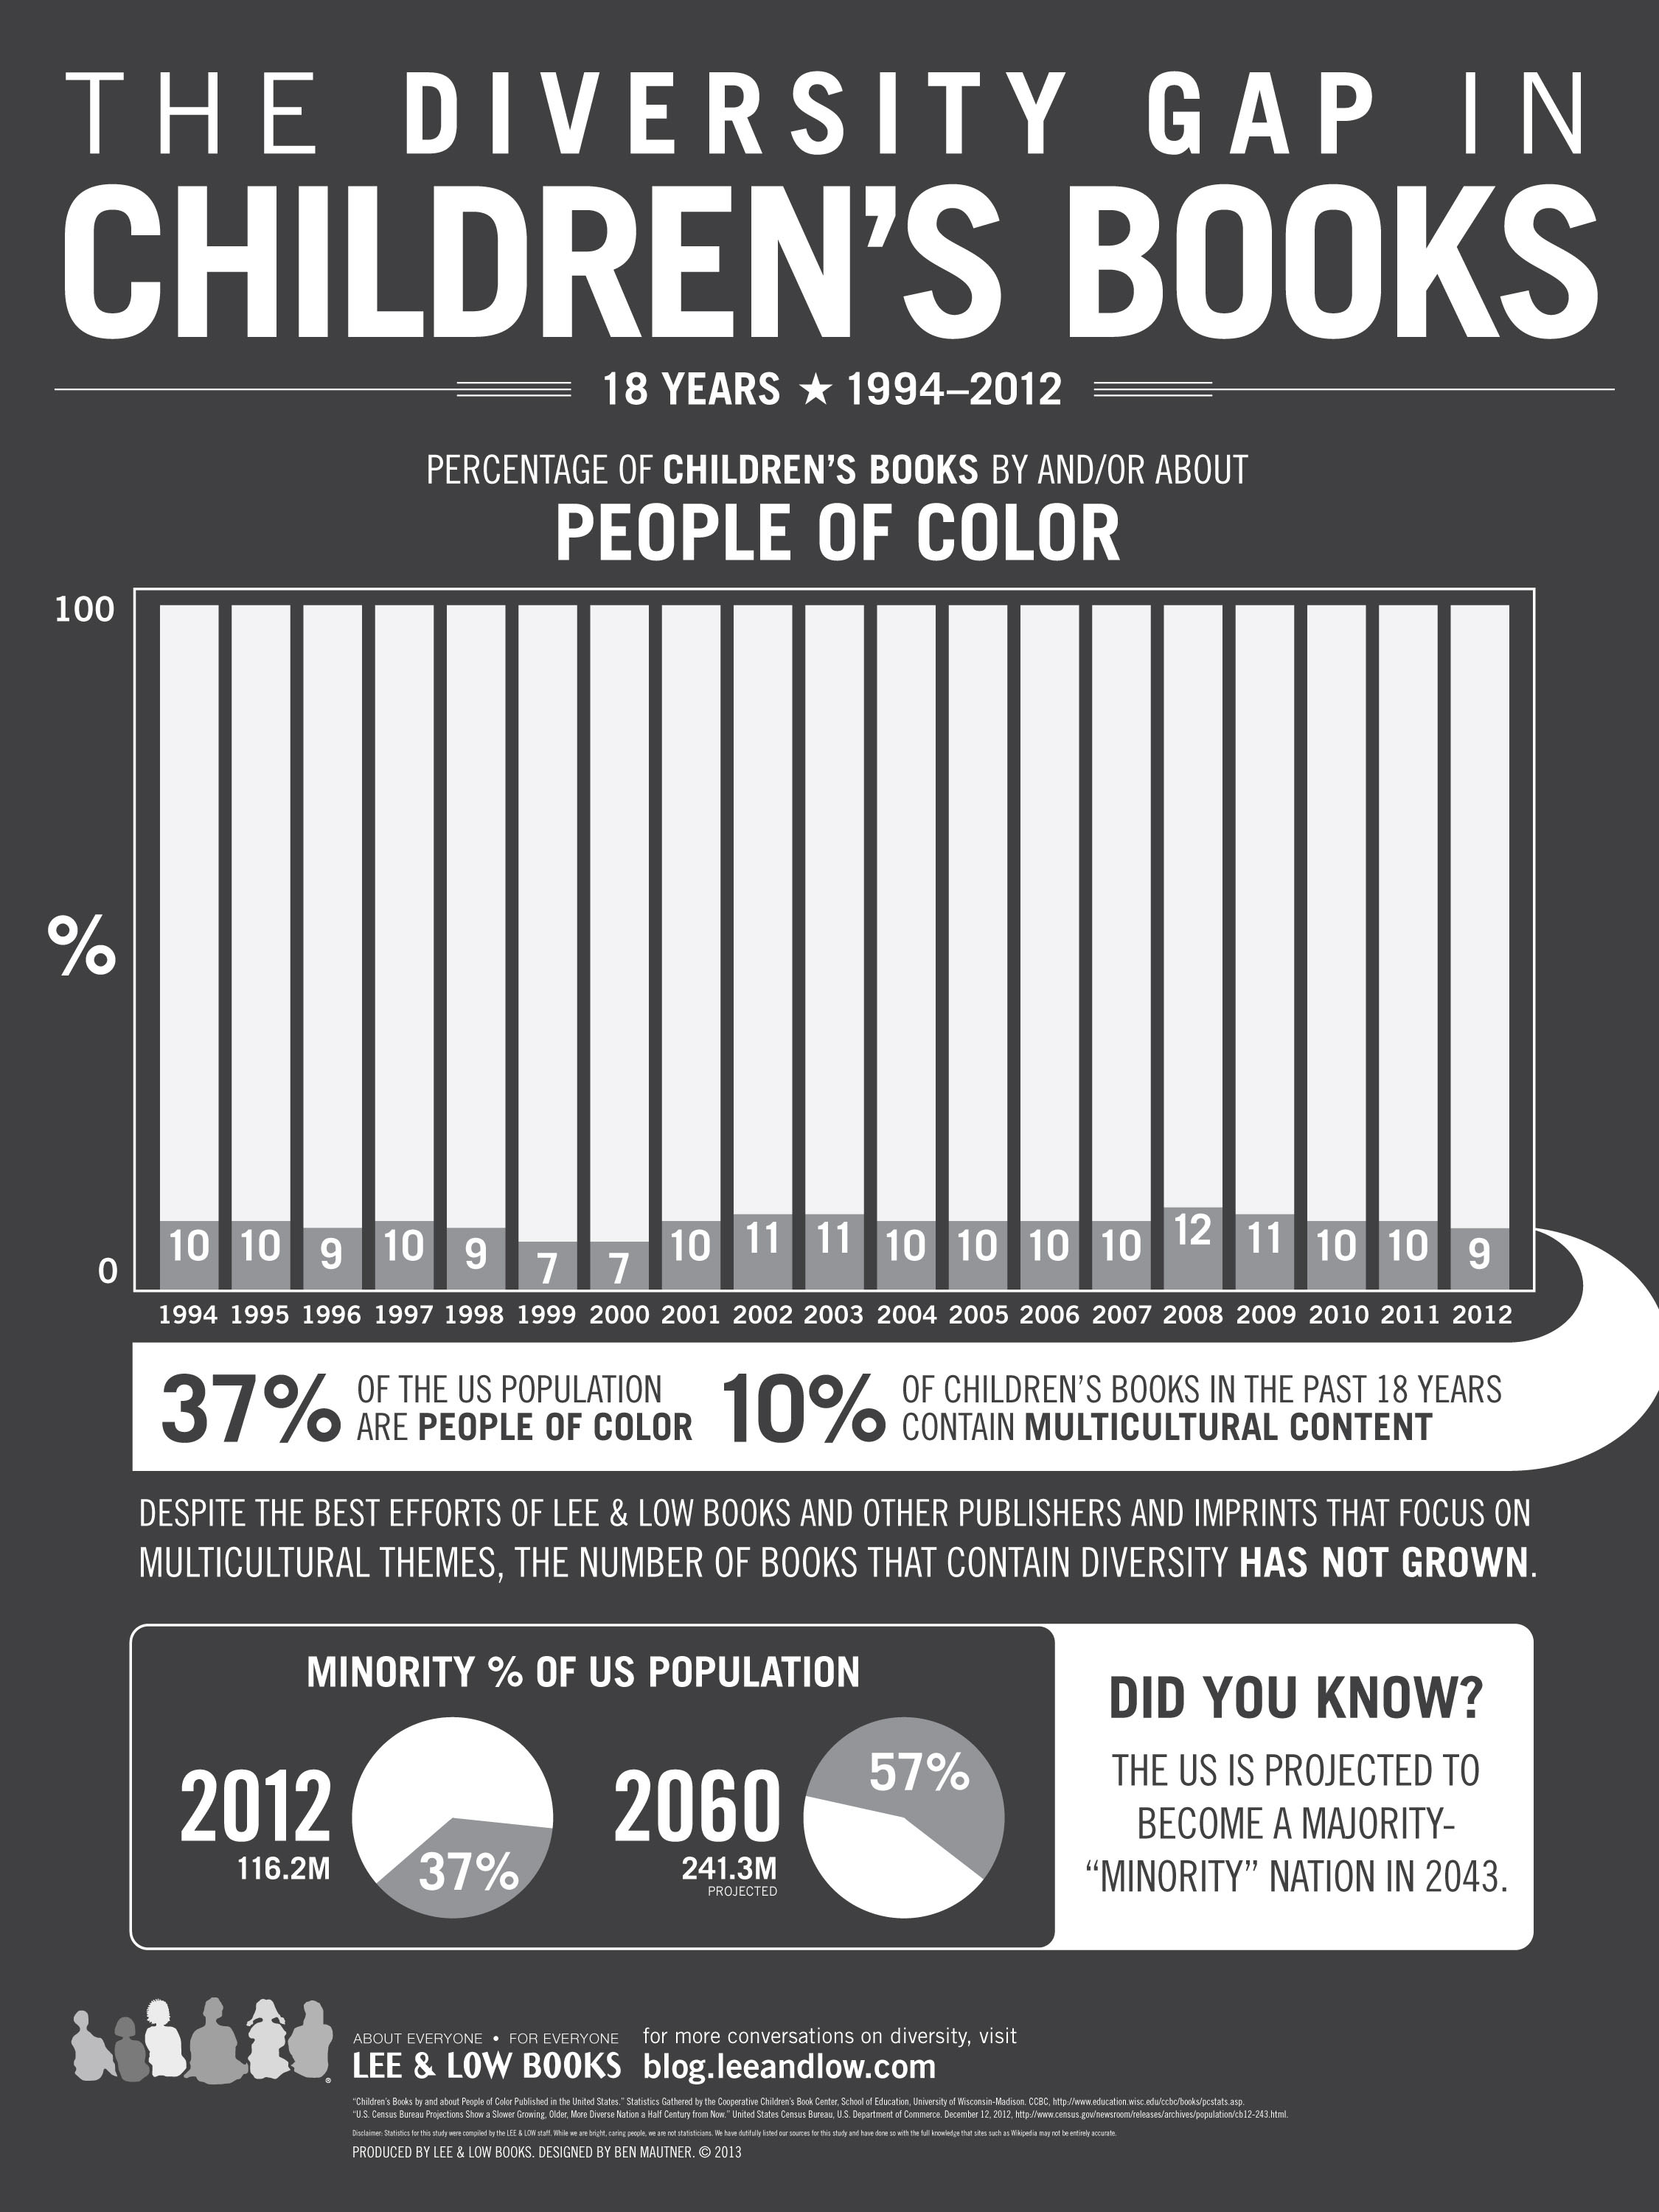 chart from Sarah Park Dahlen's article showing that only 10% of books contain multiculturalcontent